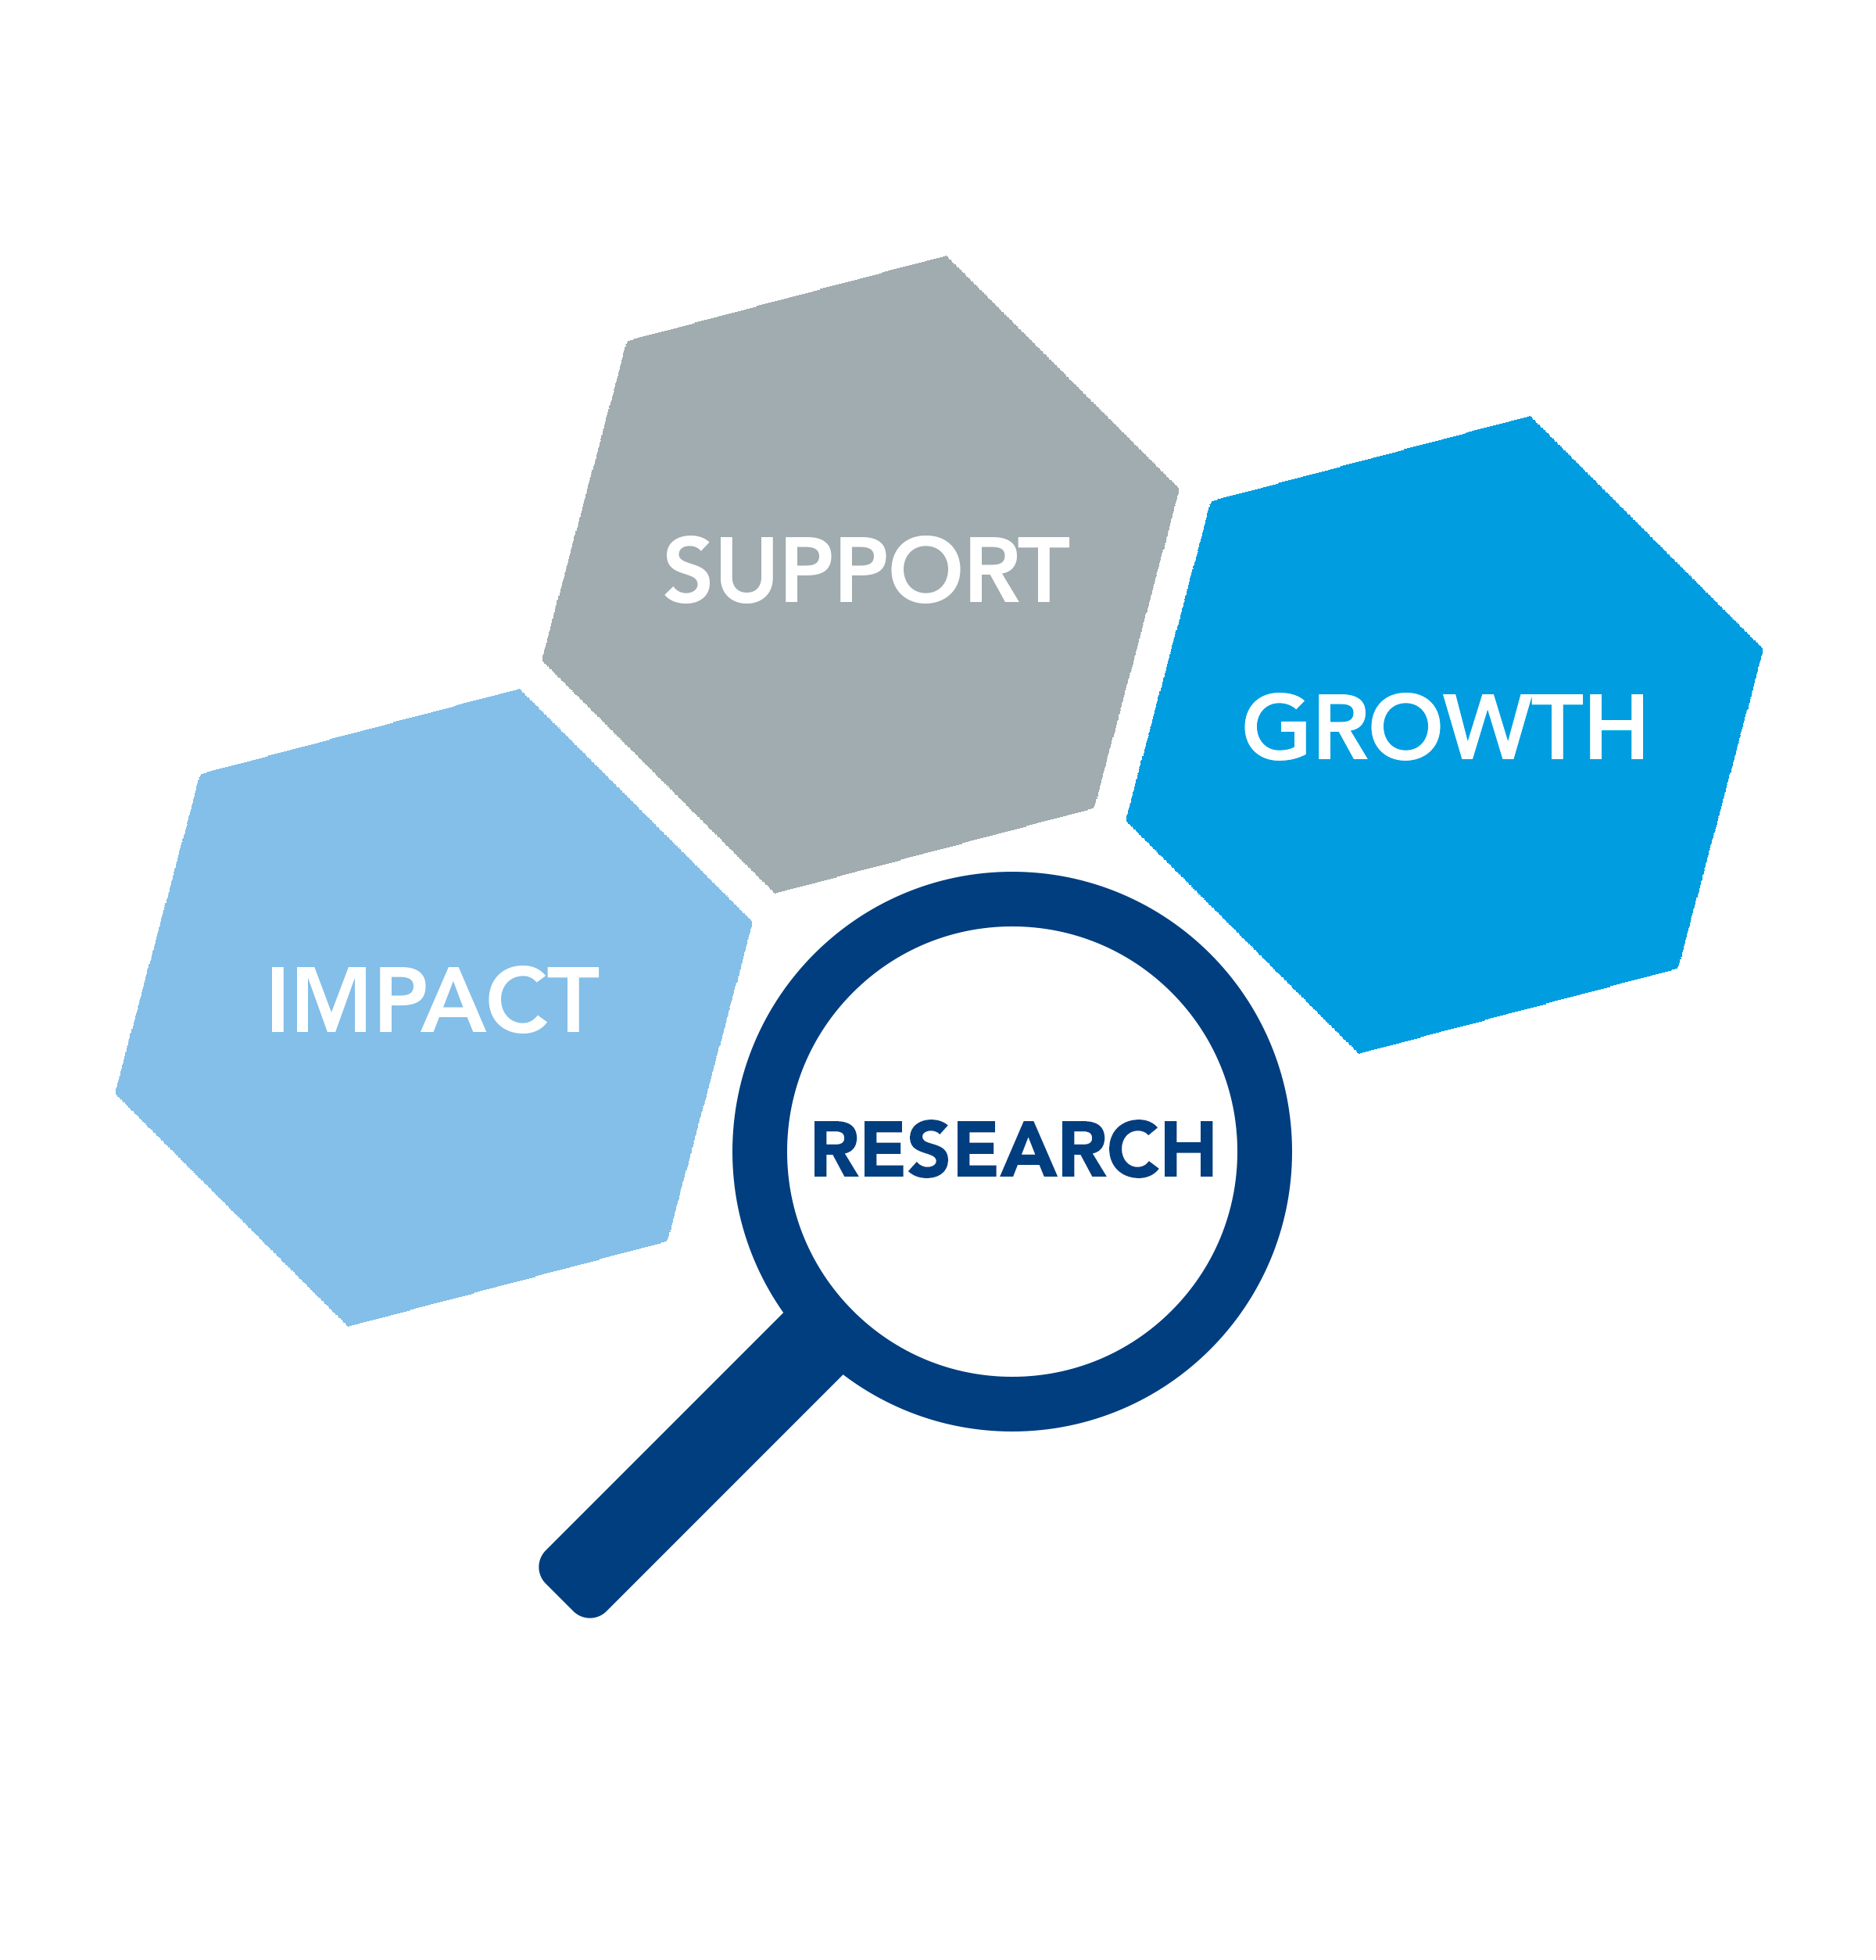 Research Impact symbol